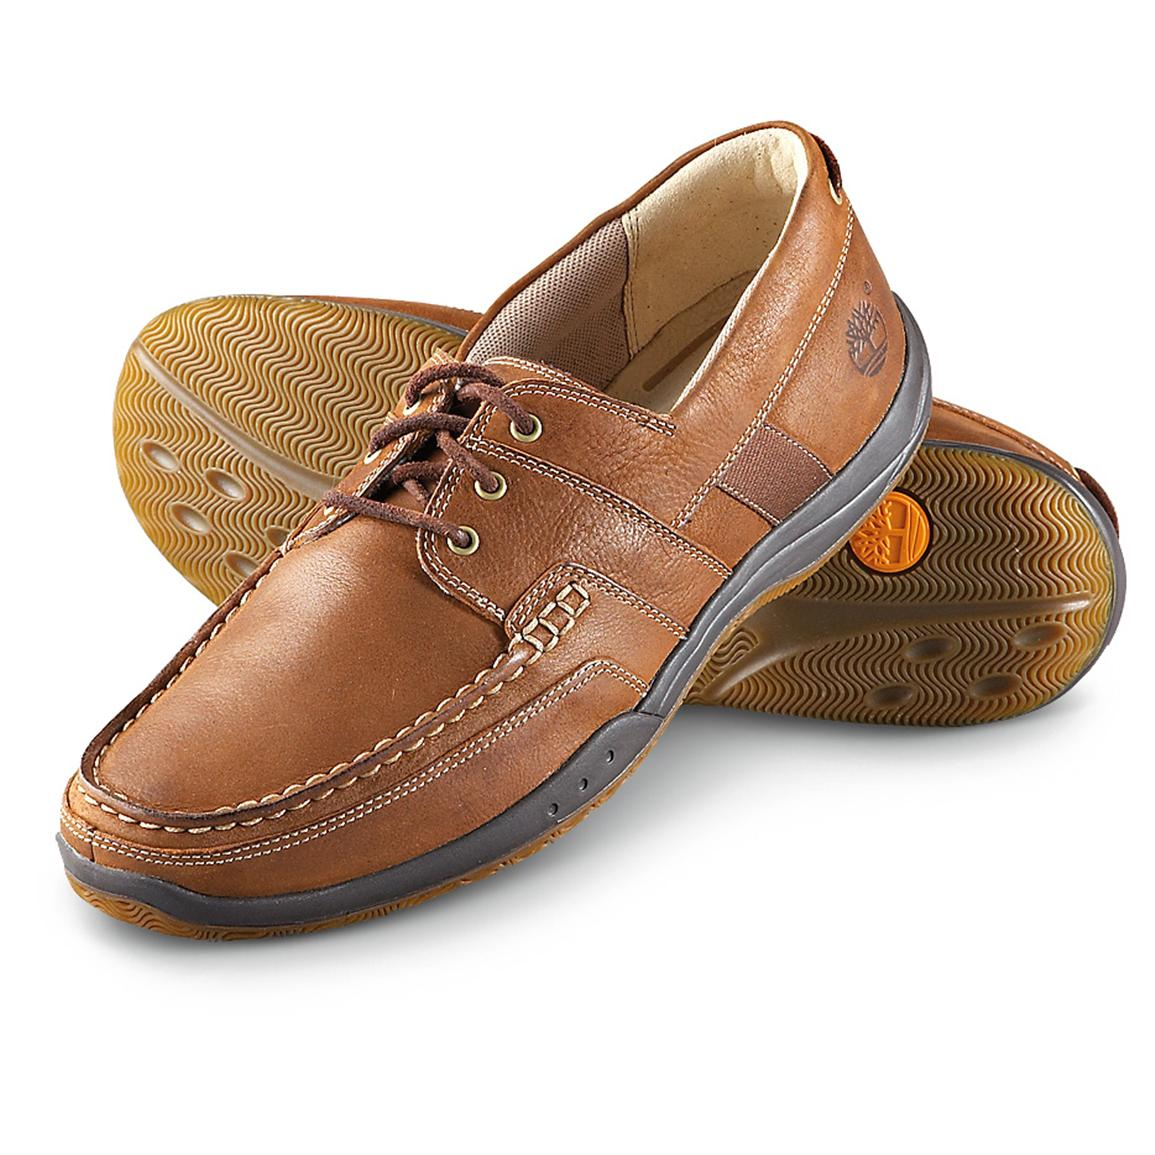 Men's Timberland® Earthkeepers® 3-eyelet Boat Shoes, Earth Brown